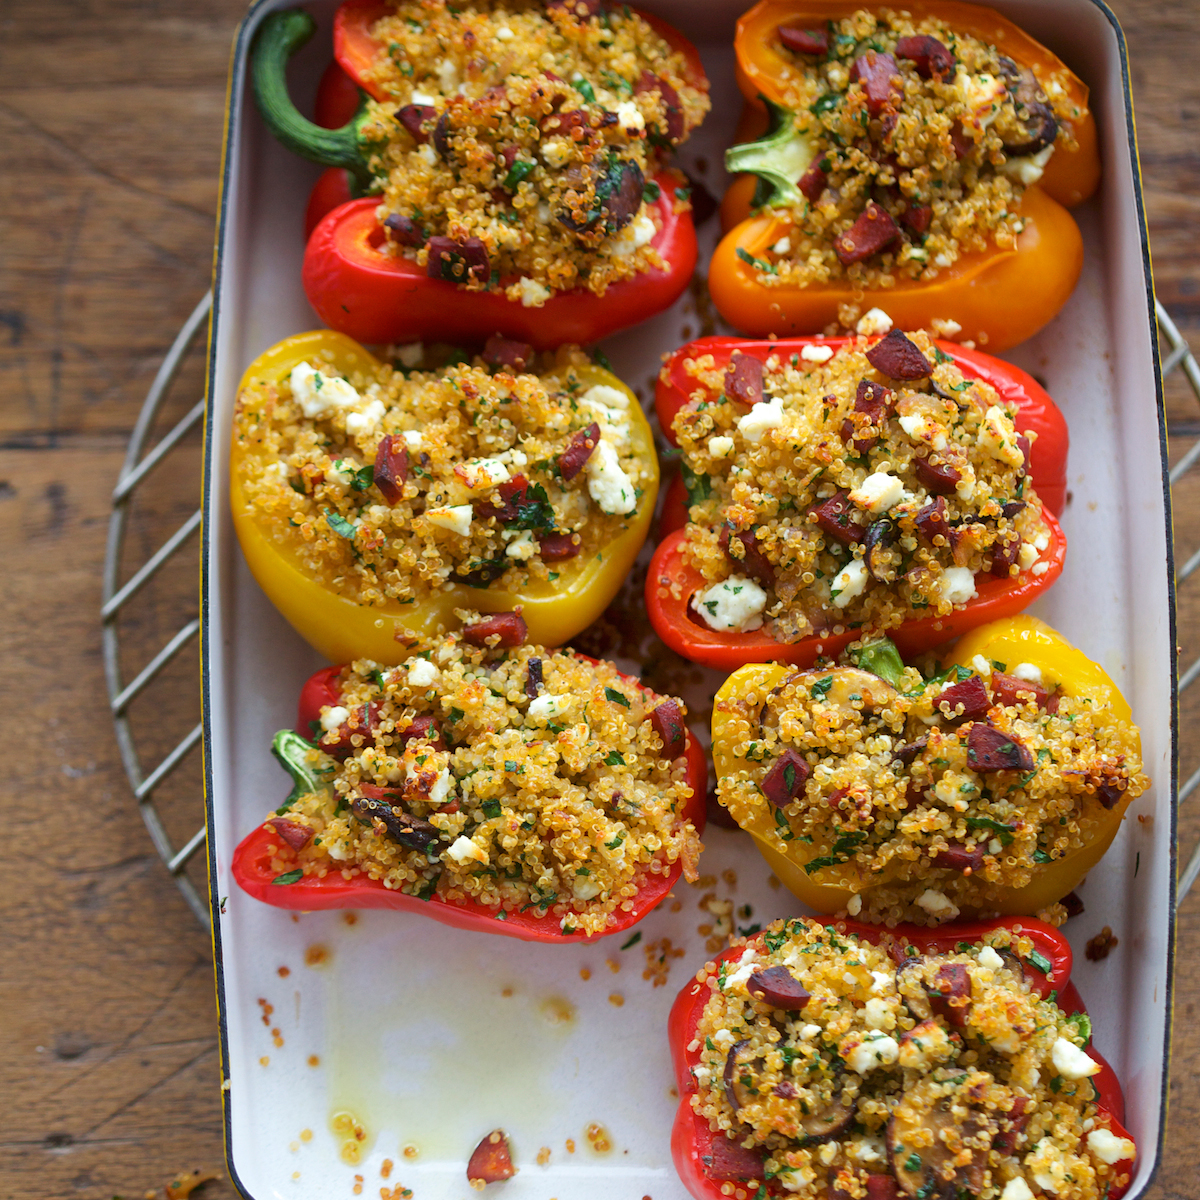 original-201402-r-stuffed-peppers-with-quinoa-chorizo-and-mushrooms.jpg